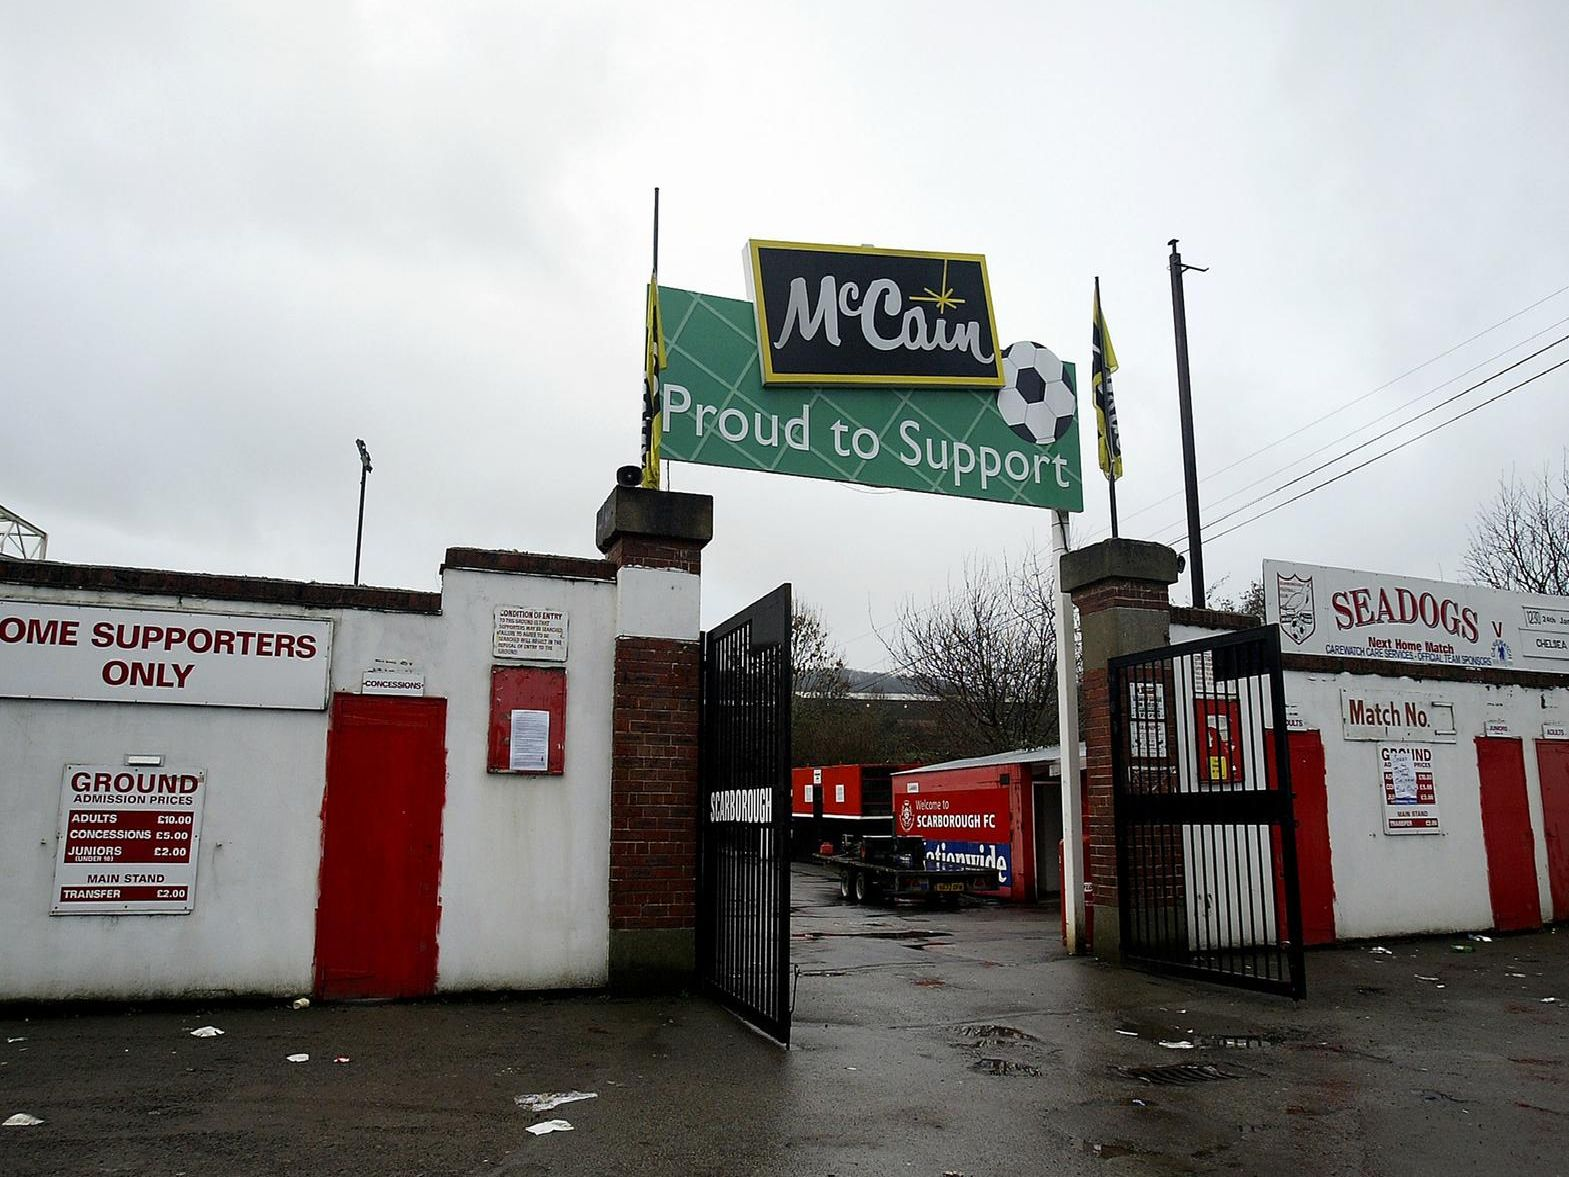 Gates at the entrance to the ground